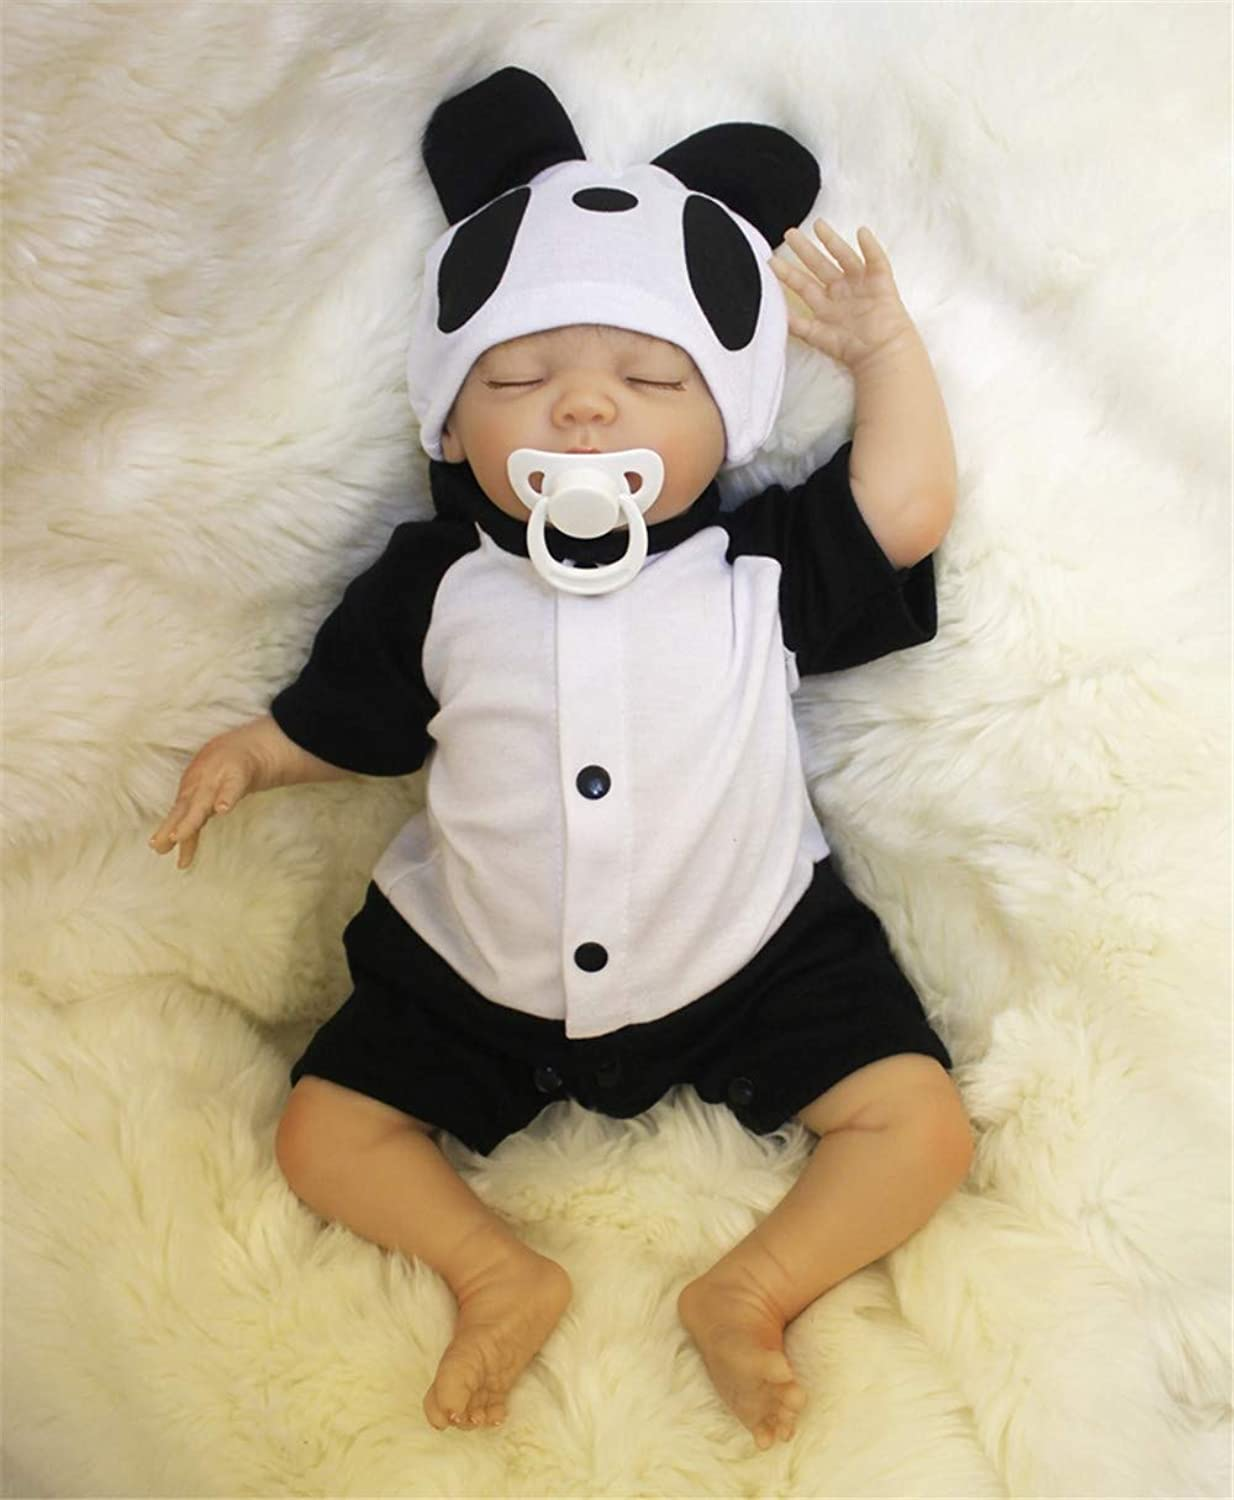 HAPA Sleeping Reborn Baby Doll Realistic Toddler Silicone Vinyl Baby Boy Panda Outfit 20 Inches